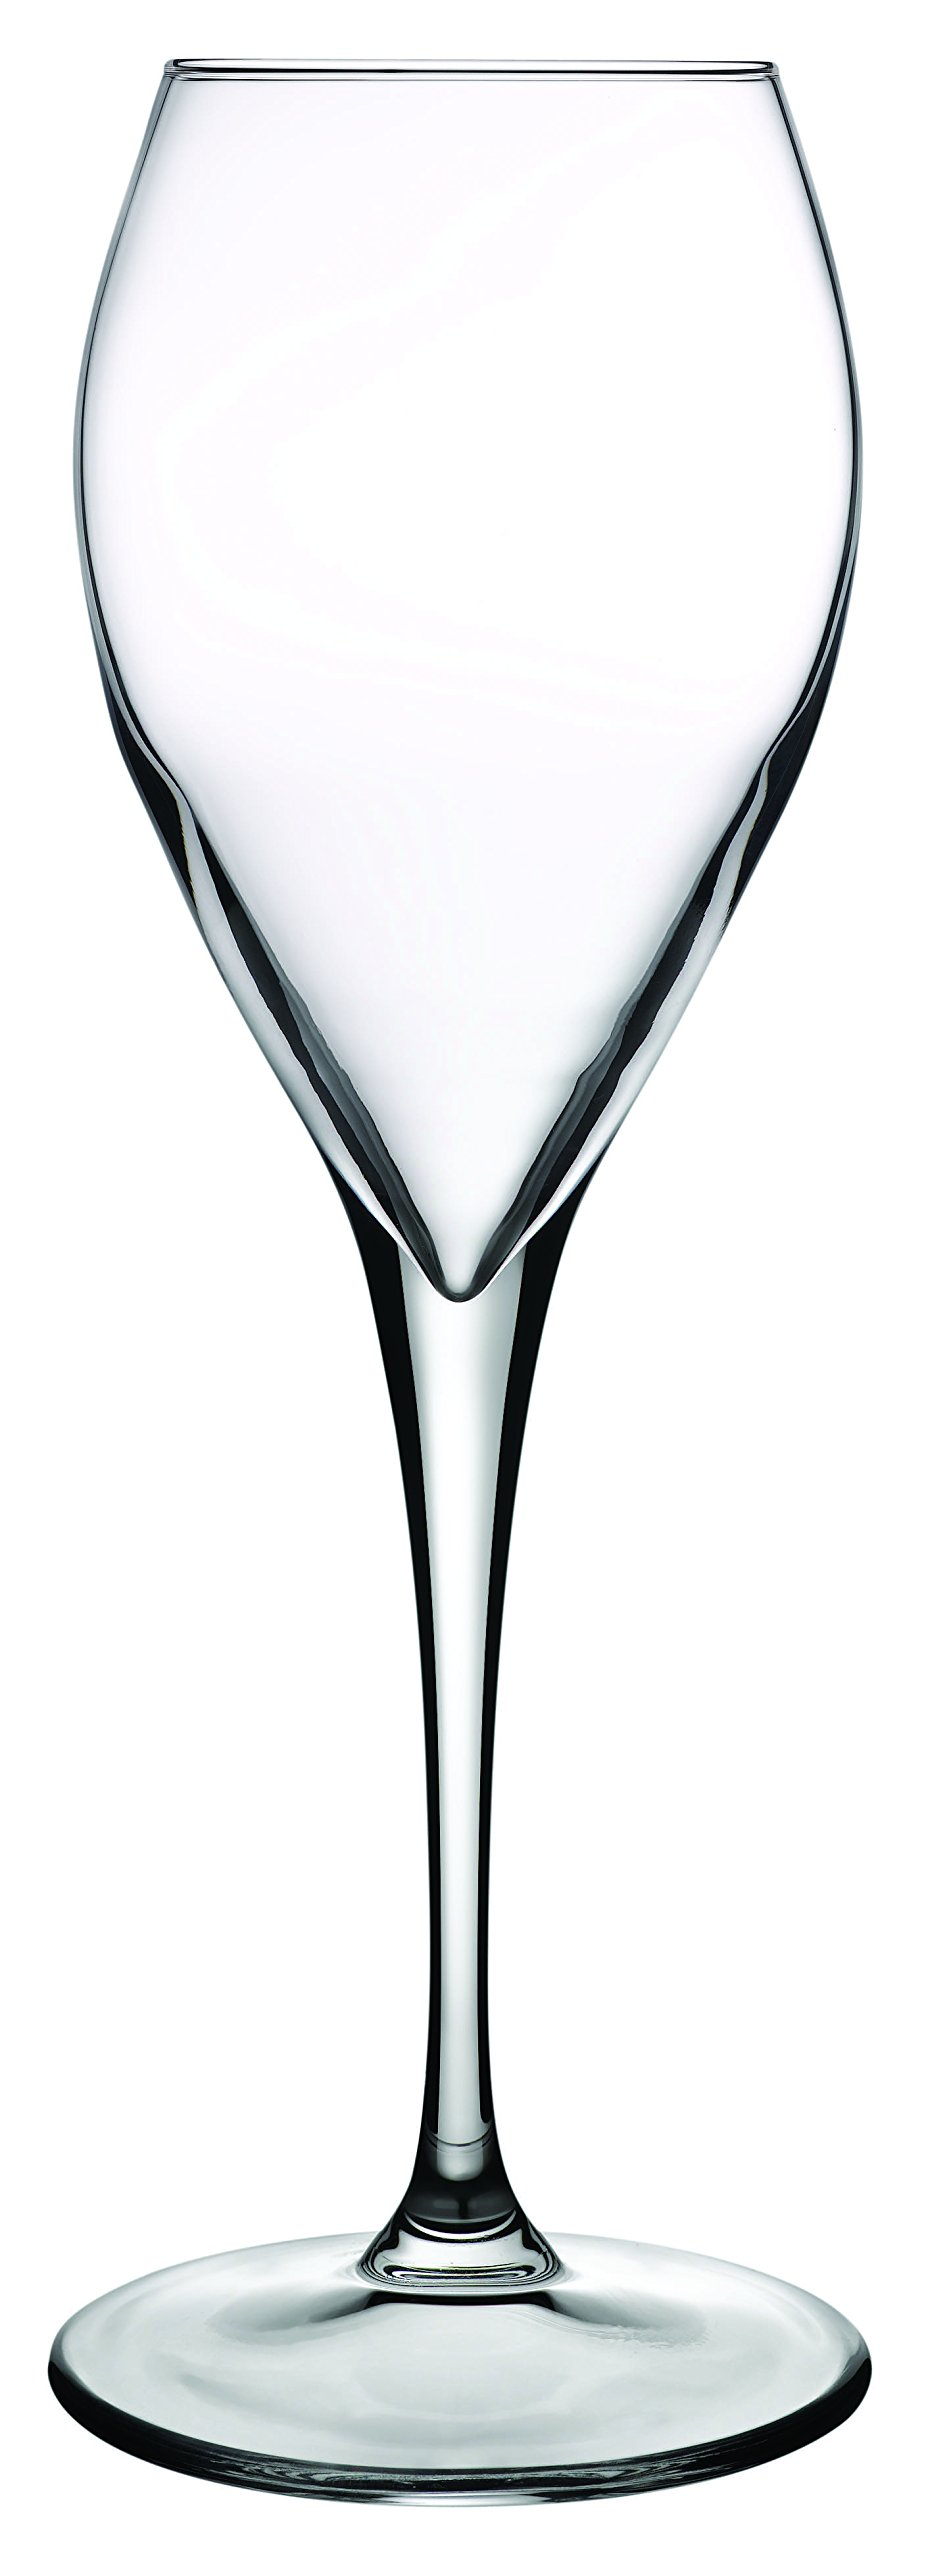 Hospitality Glass Brands 440091-024 Monte Carlo 10.75 oz. Tall Wine (Pack of 24)